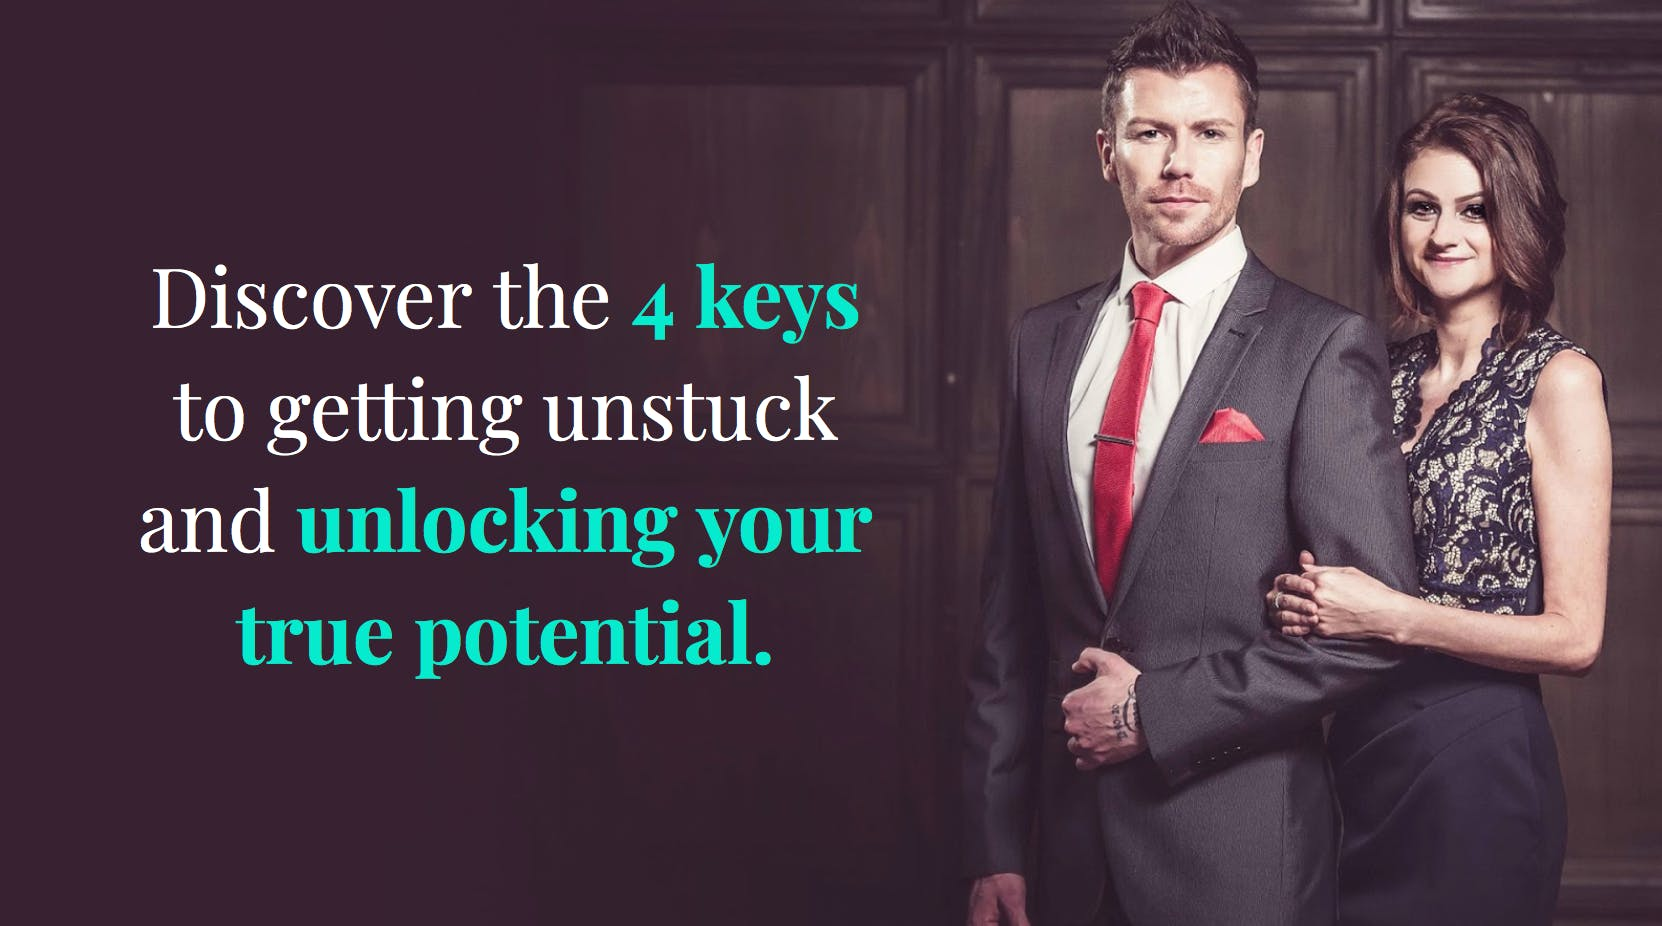 The 4 Keys To Getting Unstuck & Unlocking You